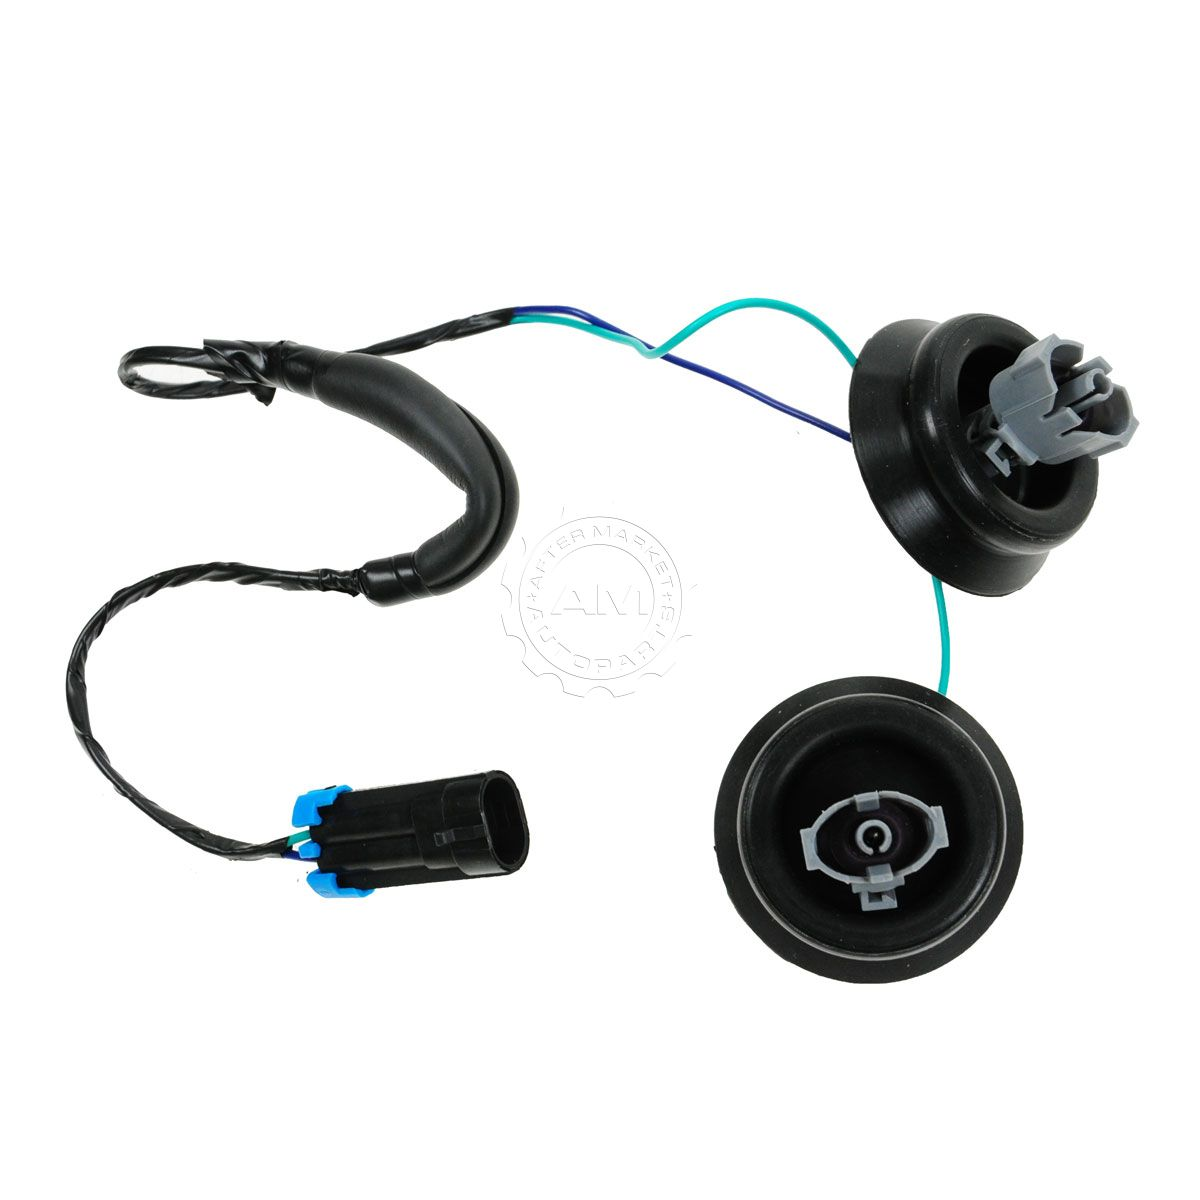 Engine Knock Sensor Harness With Dual Connectors Grommets For Wire Cadillac Chevy Gmc